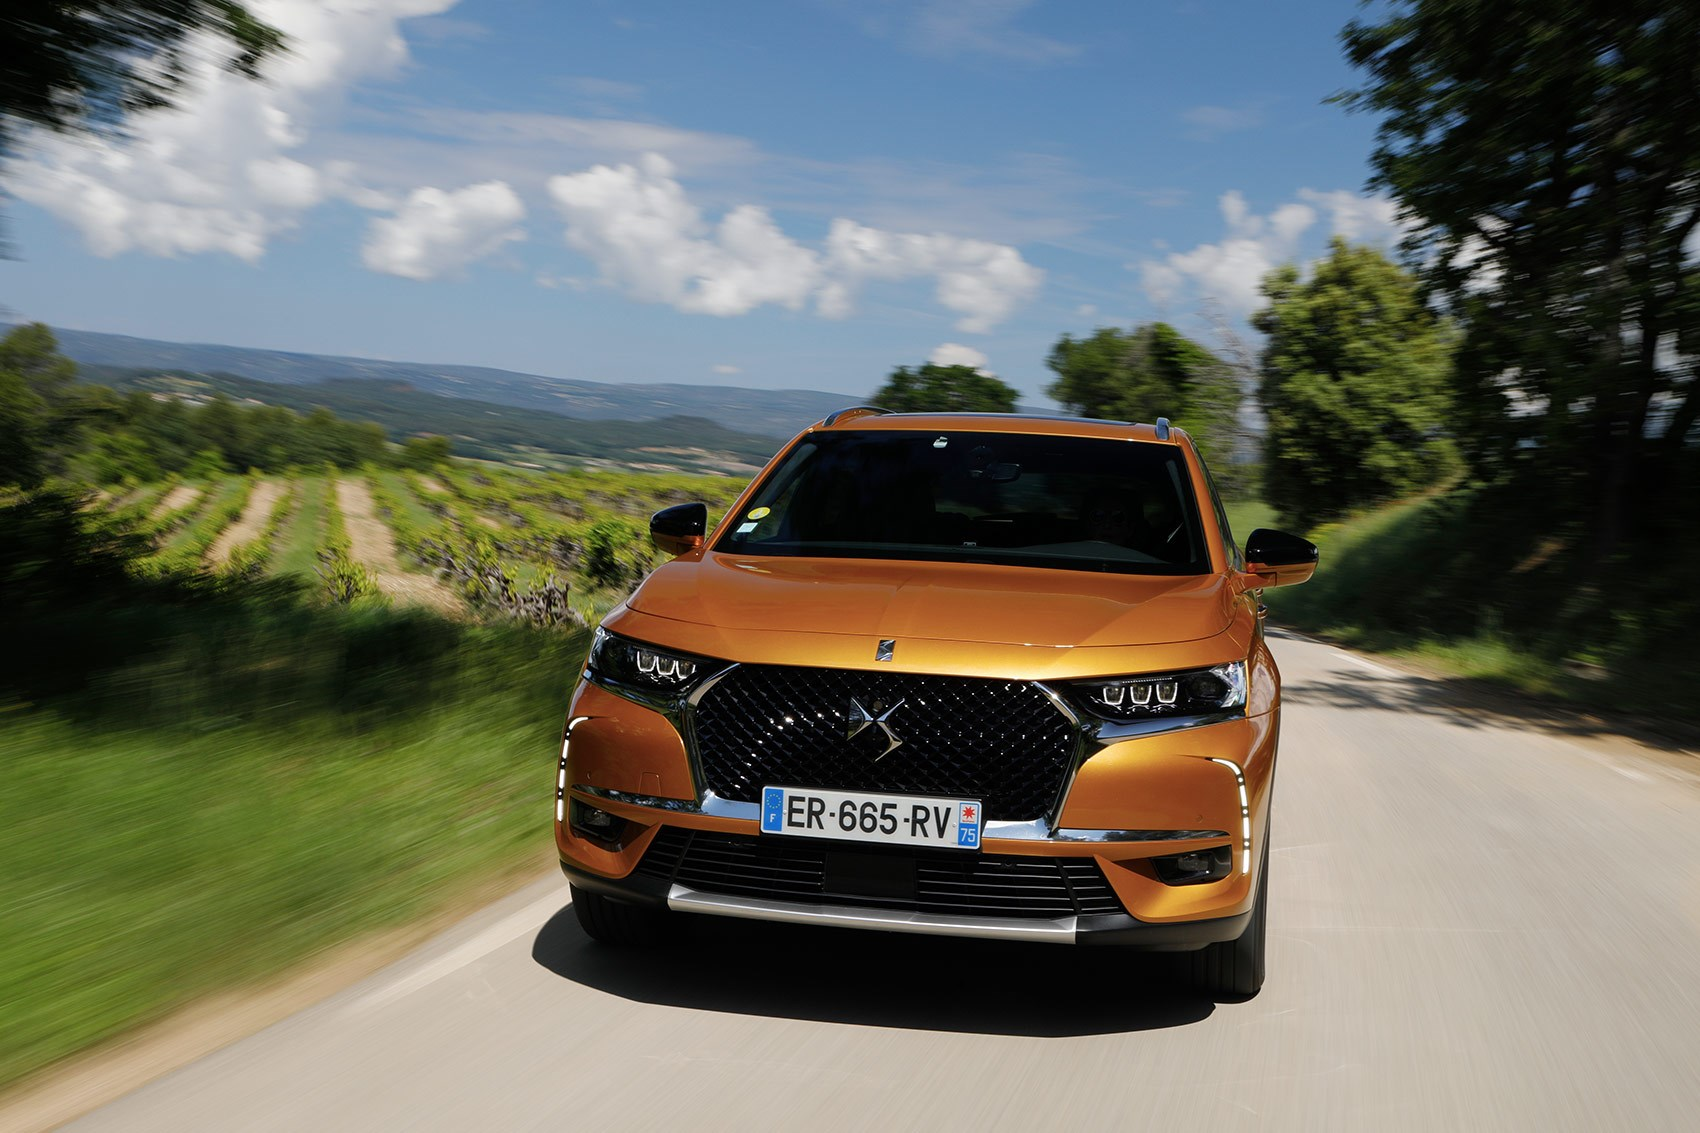 DS7 Crossback PureTech 225 (2018) review, specs and prices